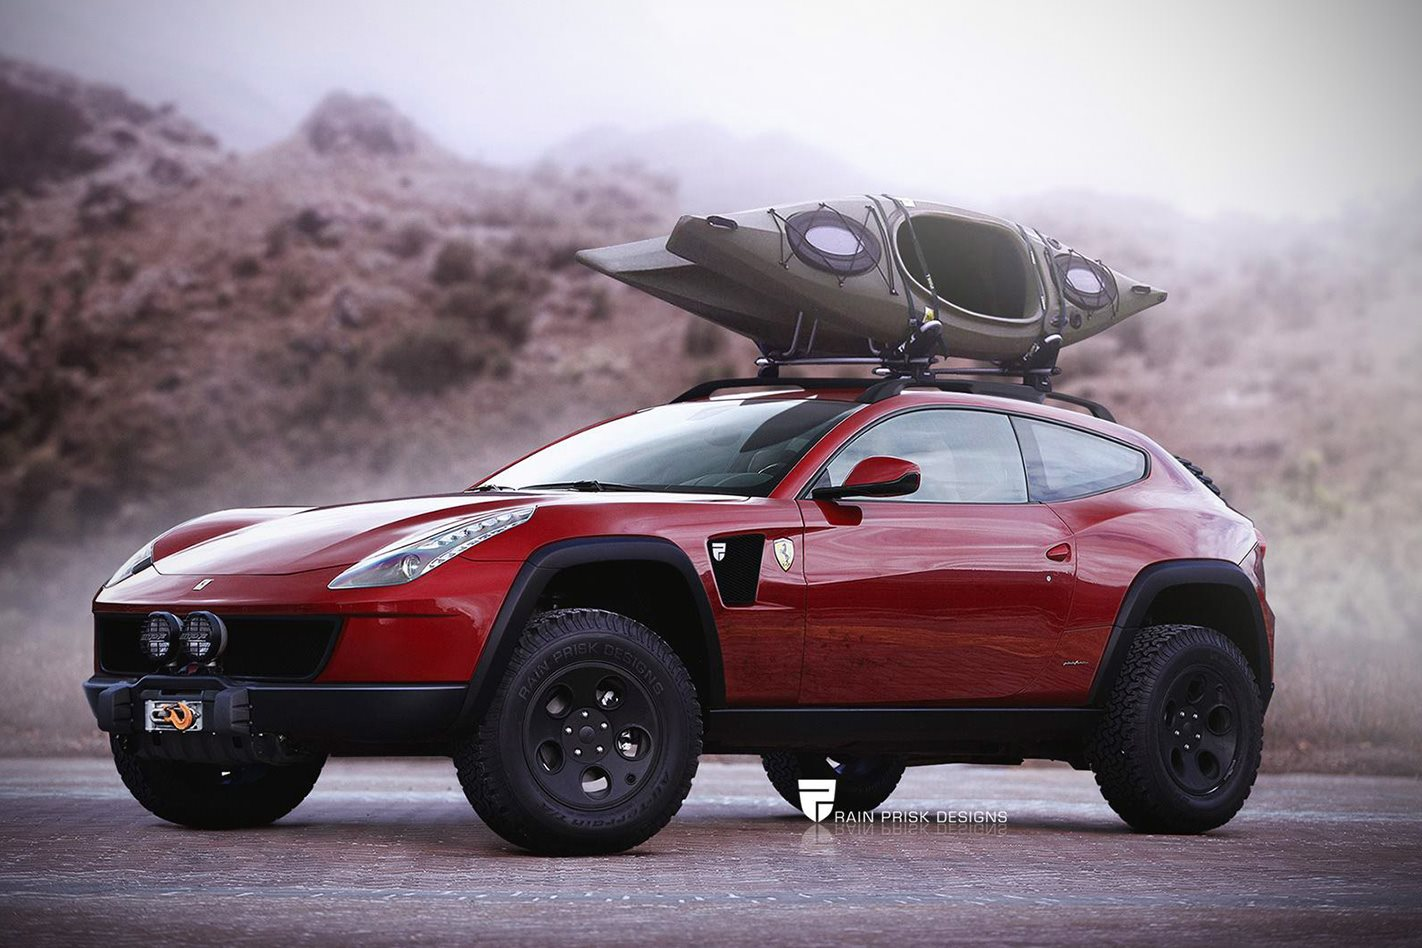 Ferrari Suv Like It Or Not It S On Its Way Wheels